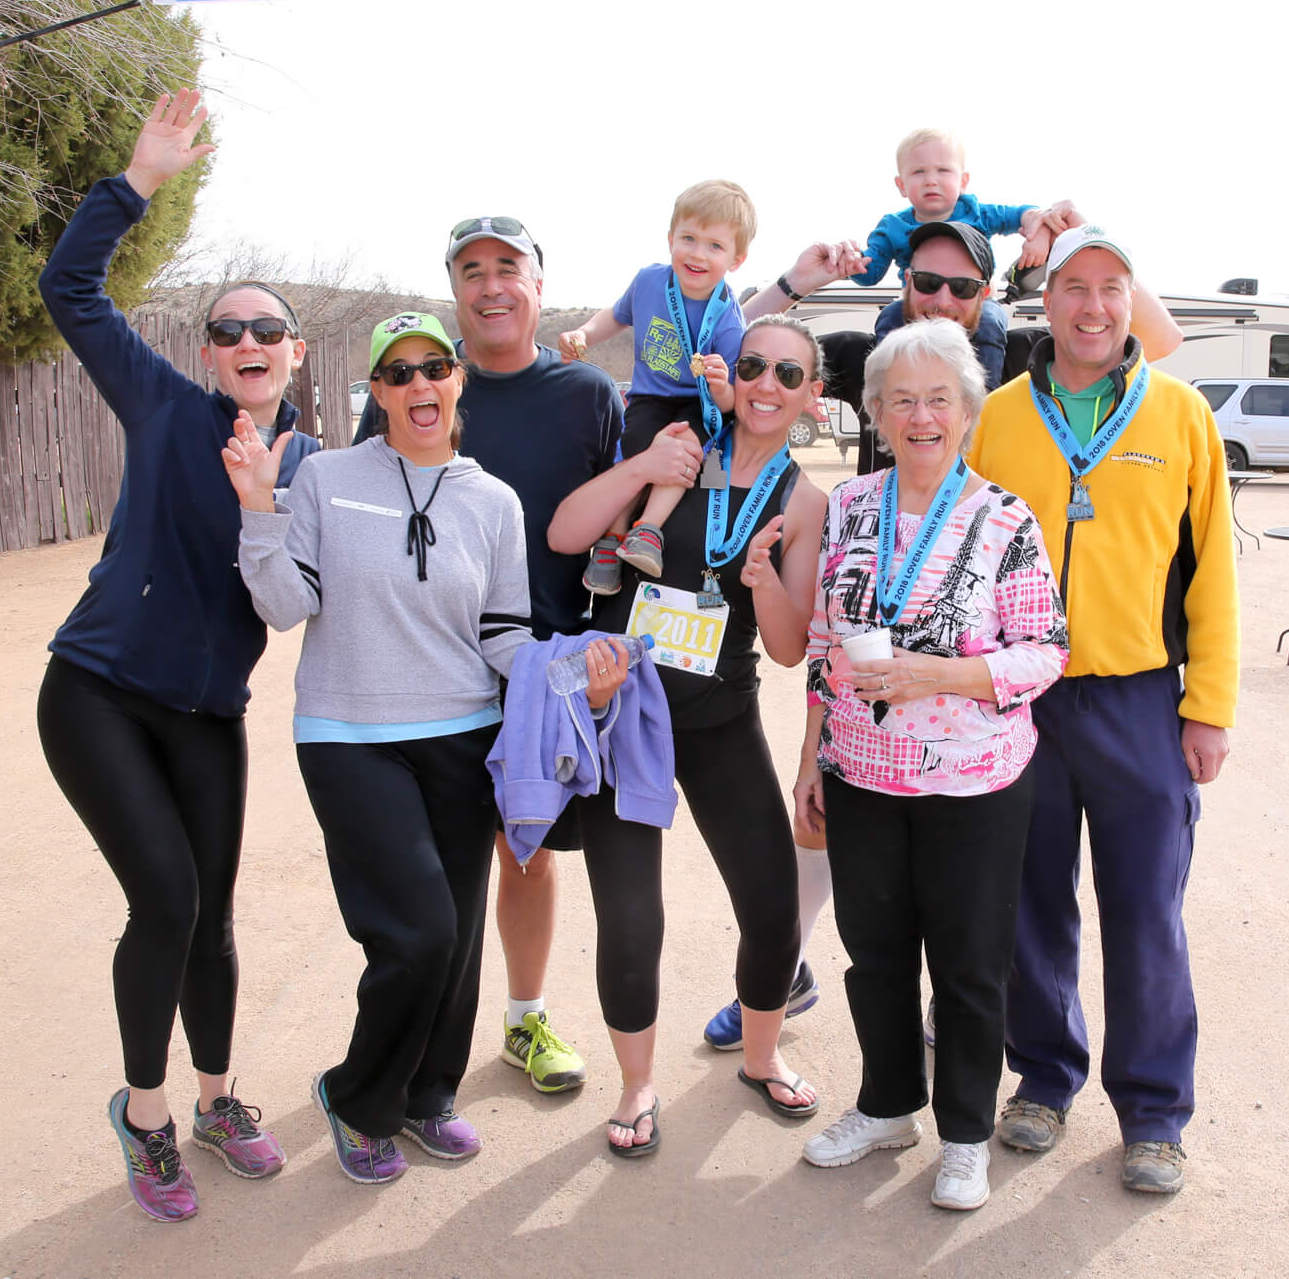 Mike Loven (3rd from left) and his family at the Loven Family Run.  Members of the Loven family: Whitney Sheen, Kirsten Loven-Butzow, Mike Loven, J.R. James, Ashley Sheen, Pat Loven, Richard James, Elliot James, and Steve Butzow